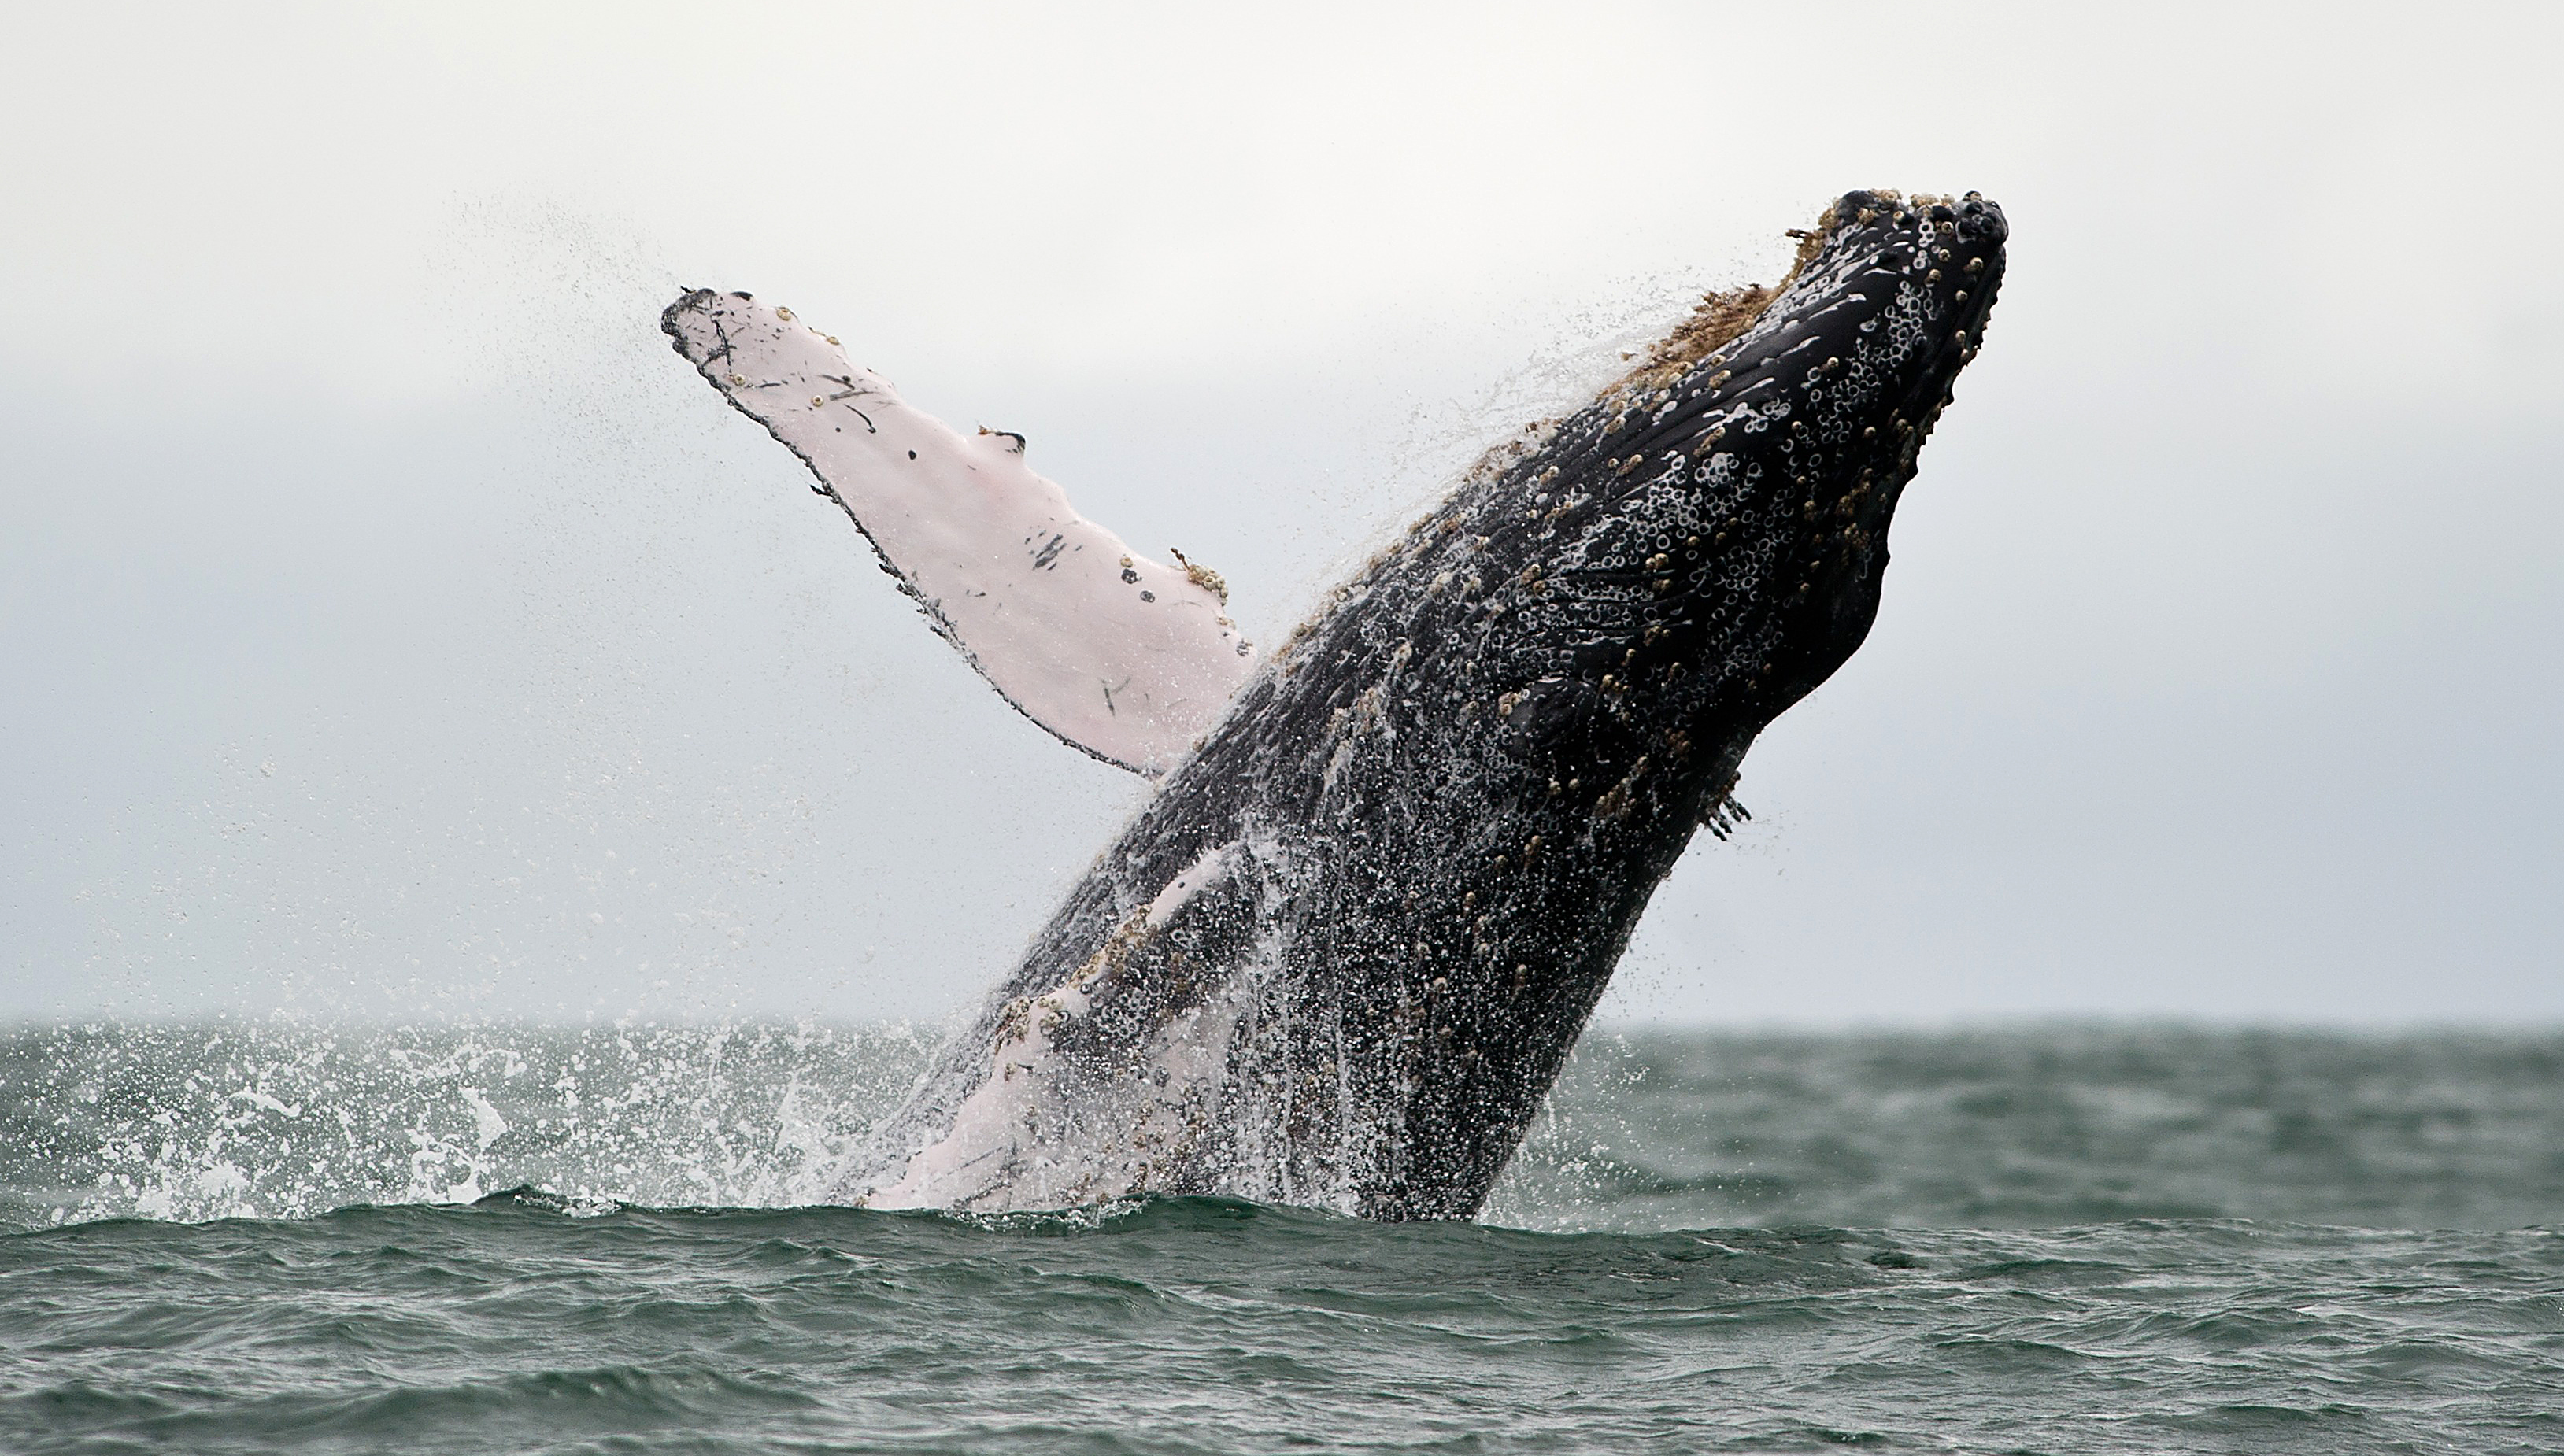 A Humpback whale jumps in the surface of the Pacific Ocean at the Uramba Bahia Malaga natural park in Colombia, on July 16, 2013.